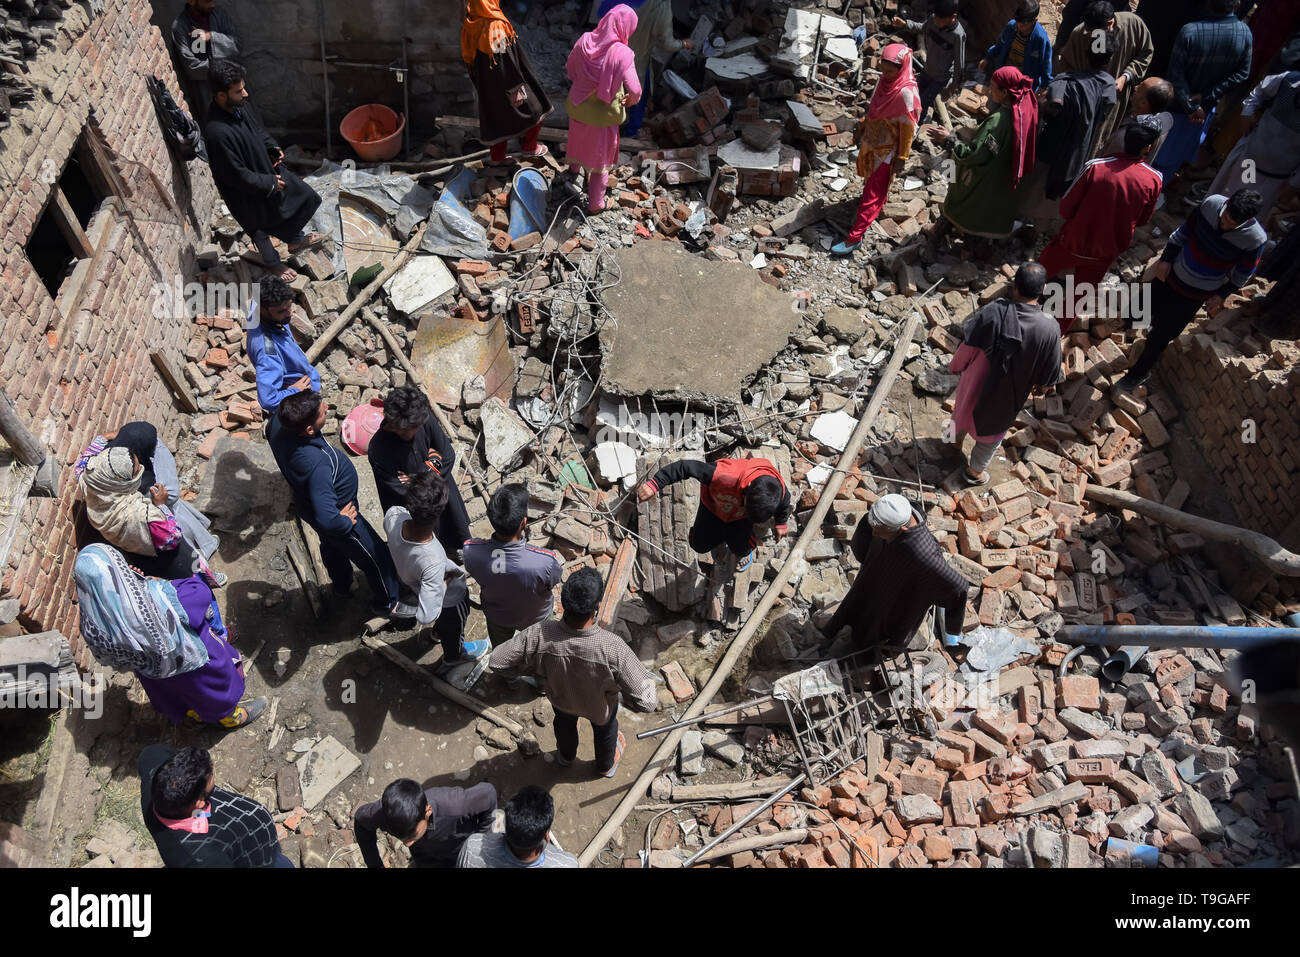 Kashmiri villagers are seen inspecting a damaged house after a gunfight in Pulwama, South of Srinagar. Four Kashmiri Rebels were killed on Saturday in two separate gunfights in Jammu and Kashmir's Pulwama and Baramulla districts. - Stock Image